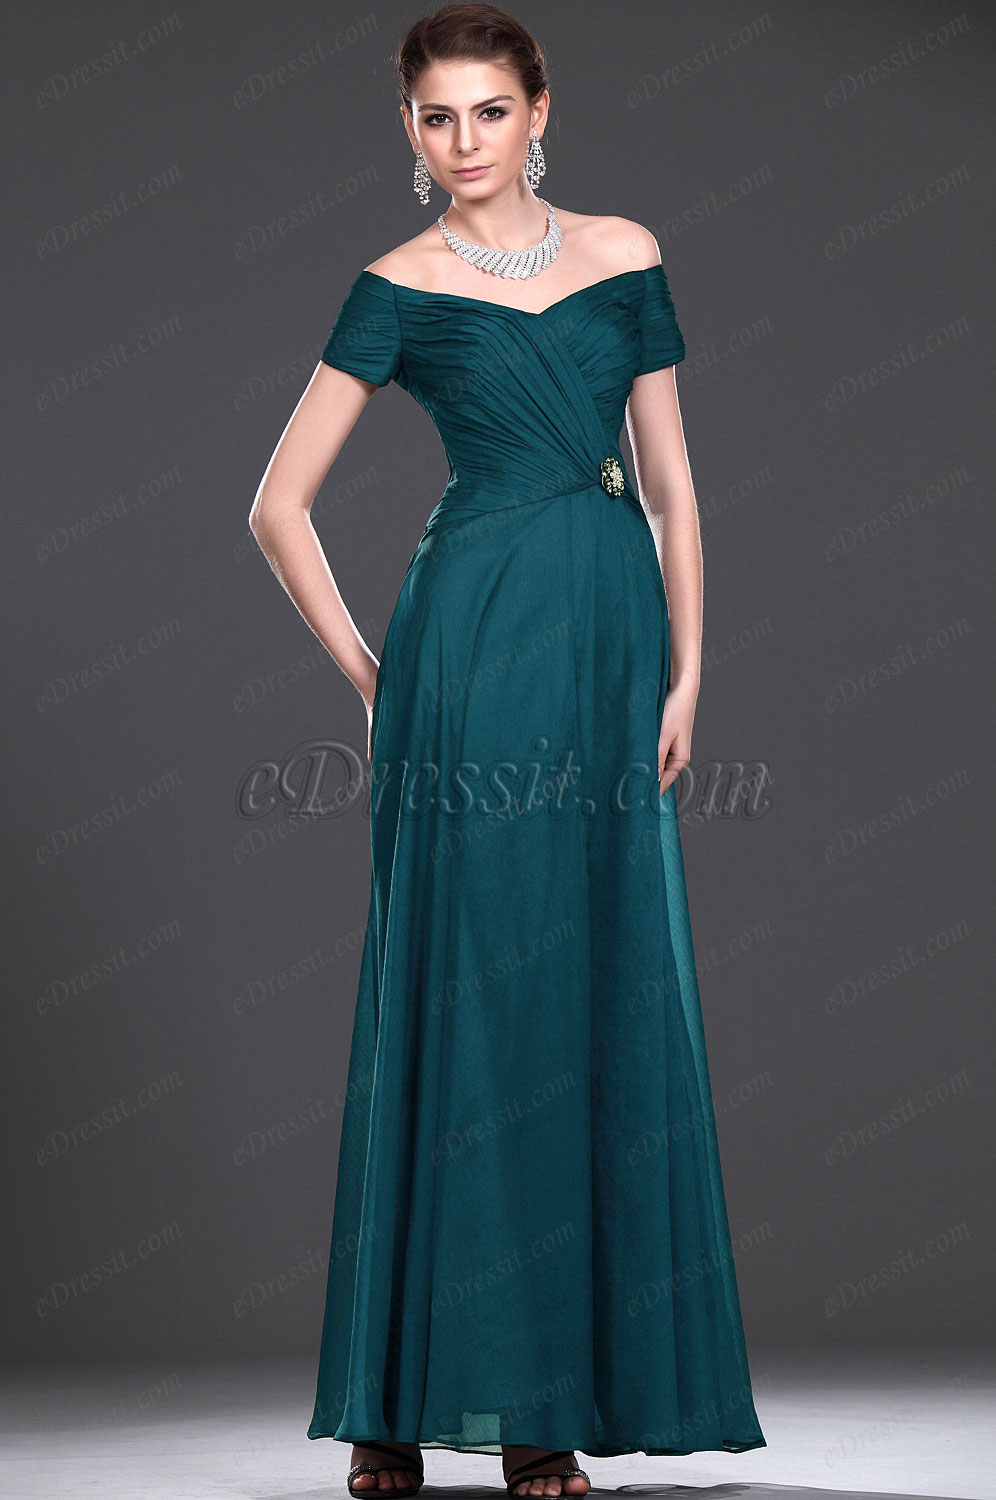 Edressit New V Neck Off Shoulder Mother Of The Bride Dress